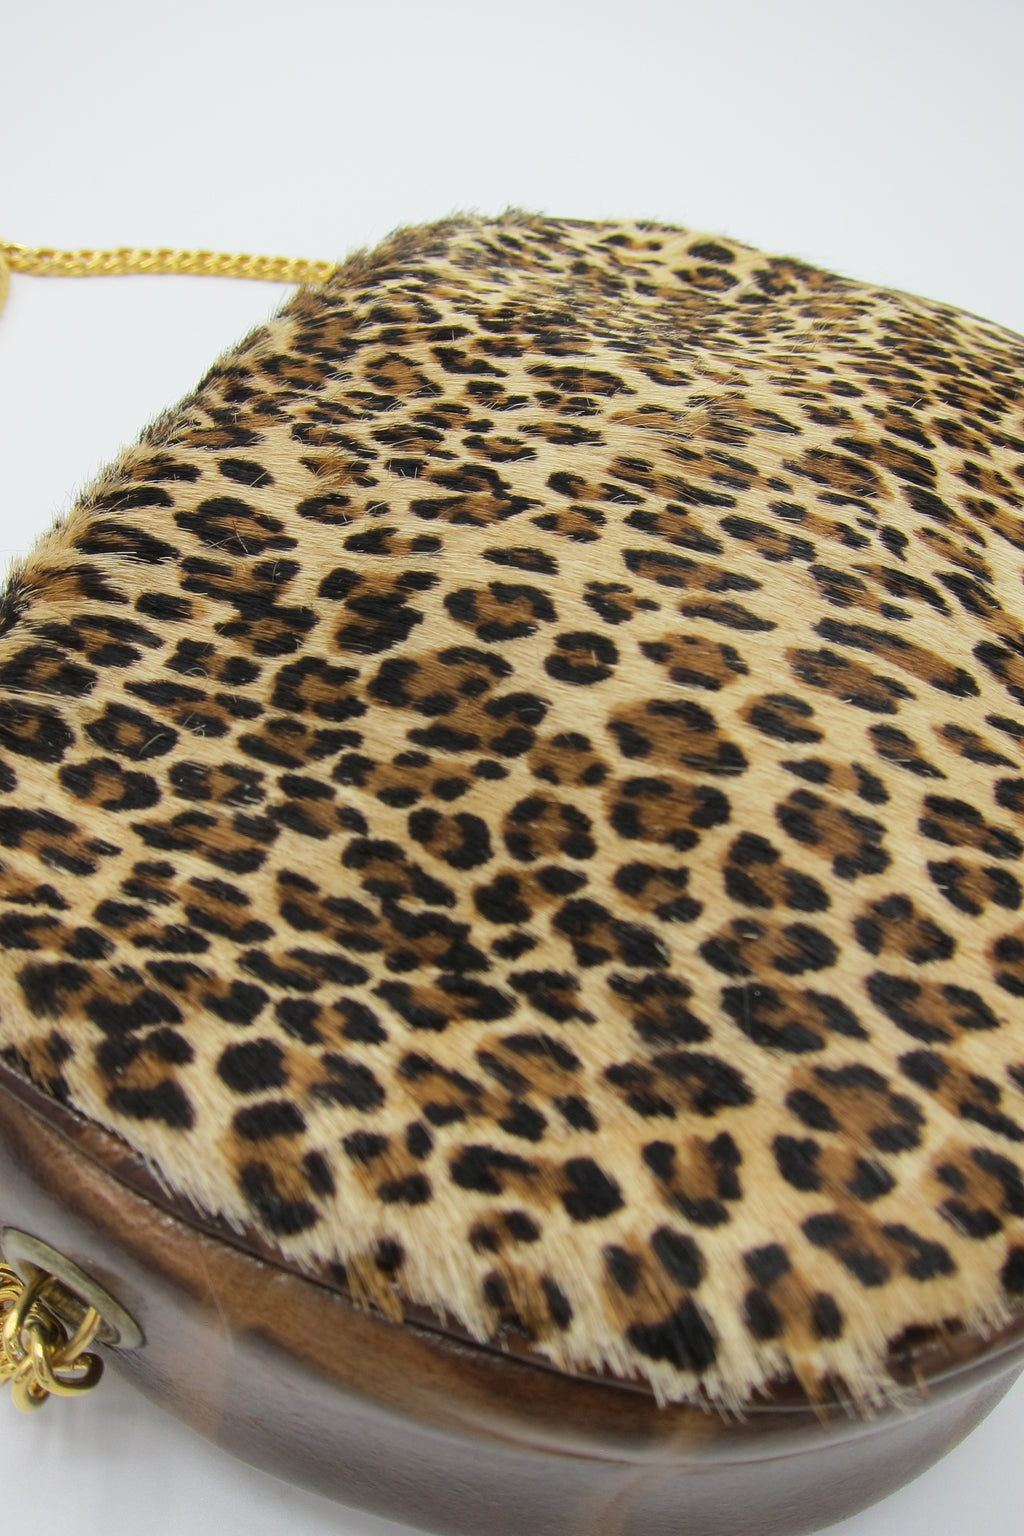 Vintage Calf Hair Leopard Print Purse with Chain Strap